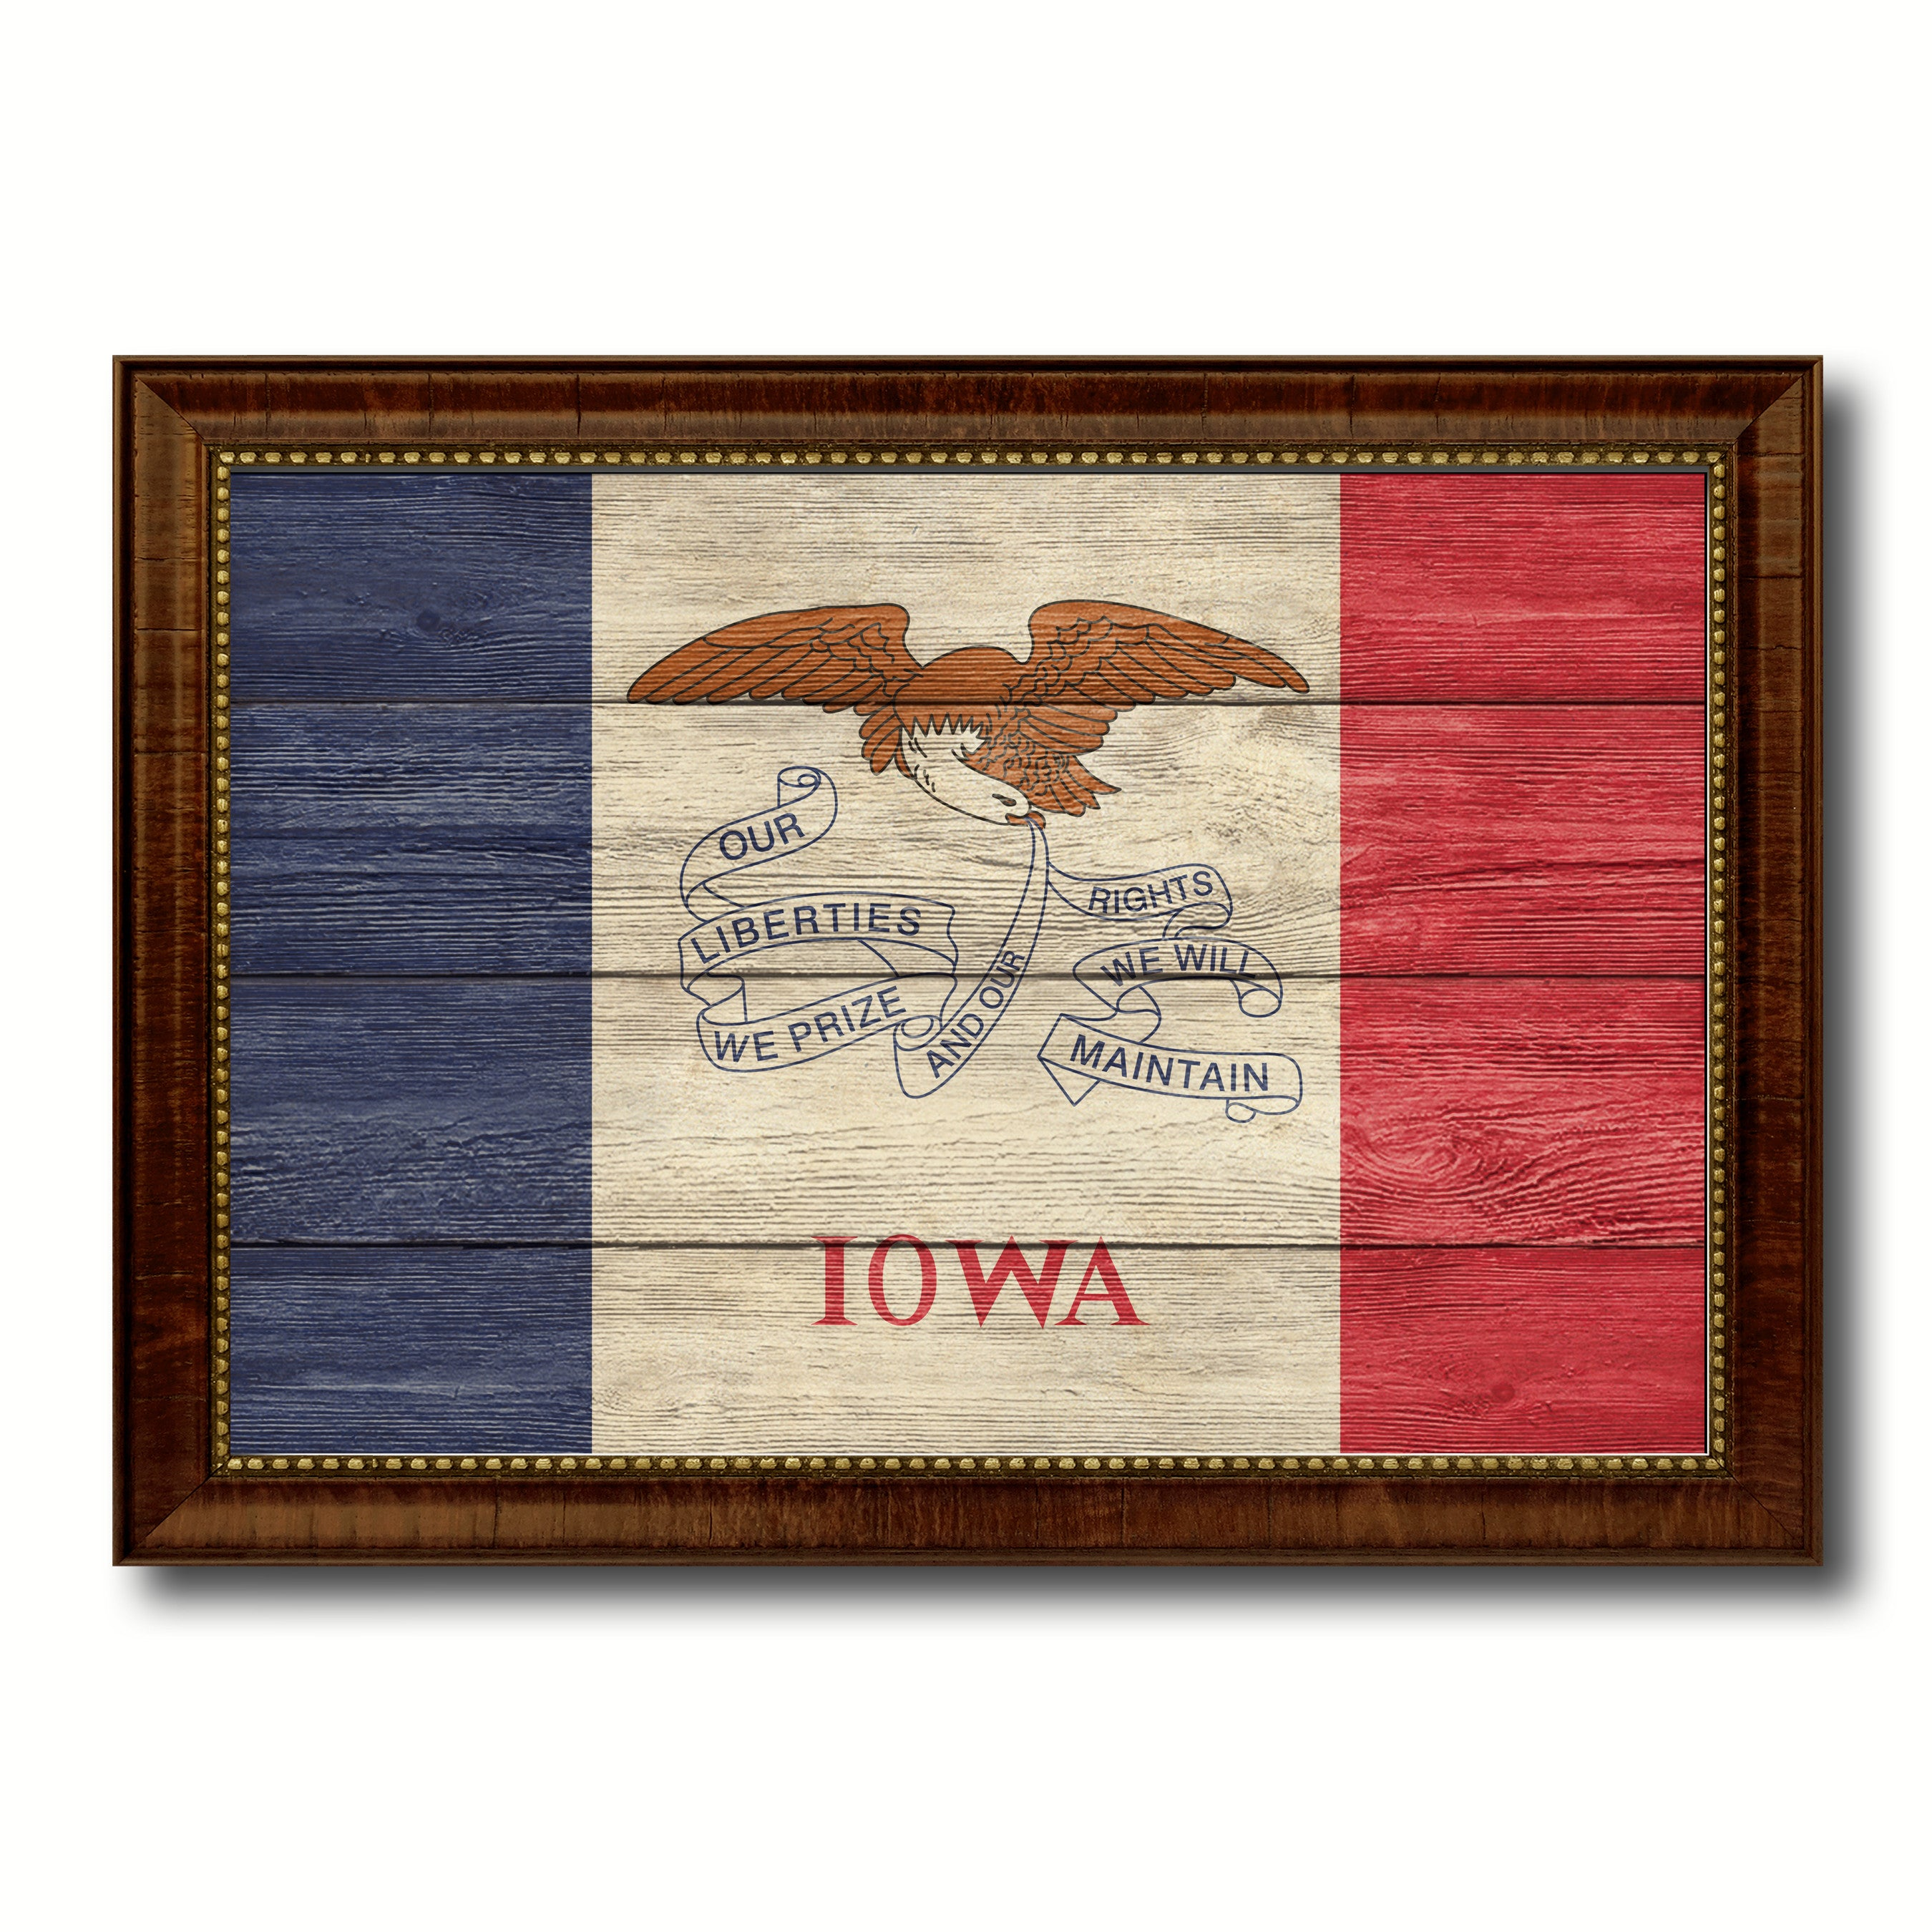 Iowa State Flag Texture Canvas Print with Brown Picture Frame Gifts Home Decor Wall Art Collectible Decoration